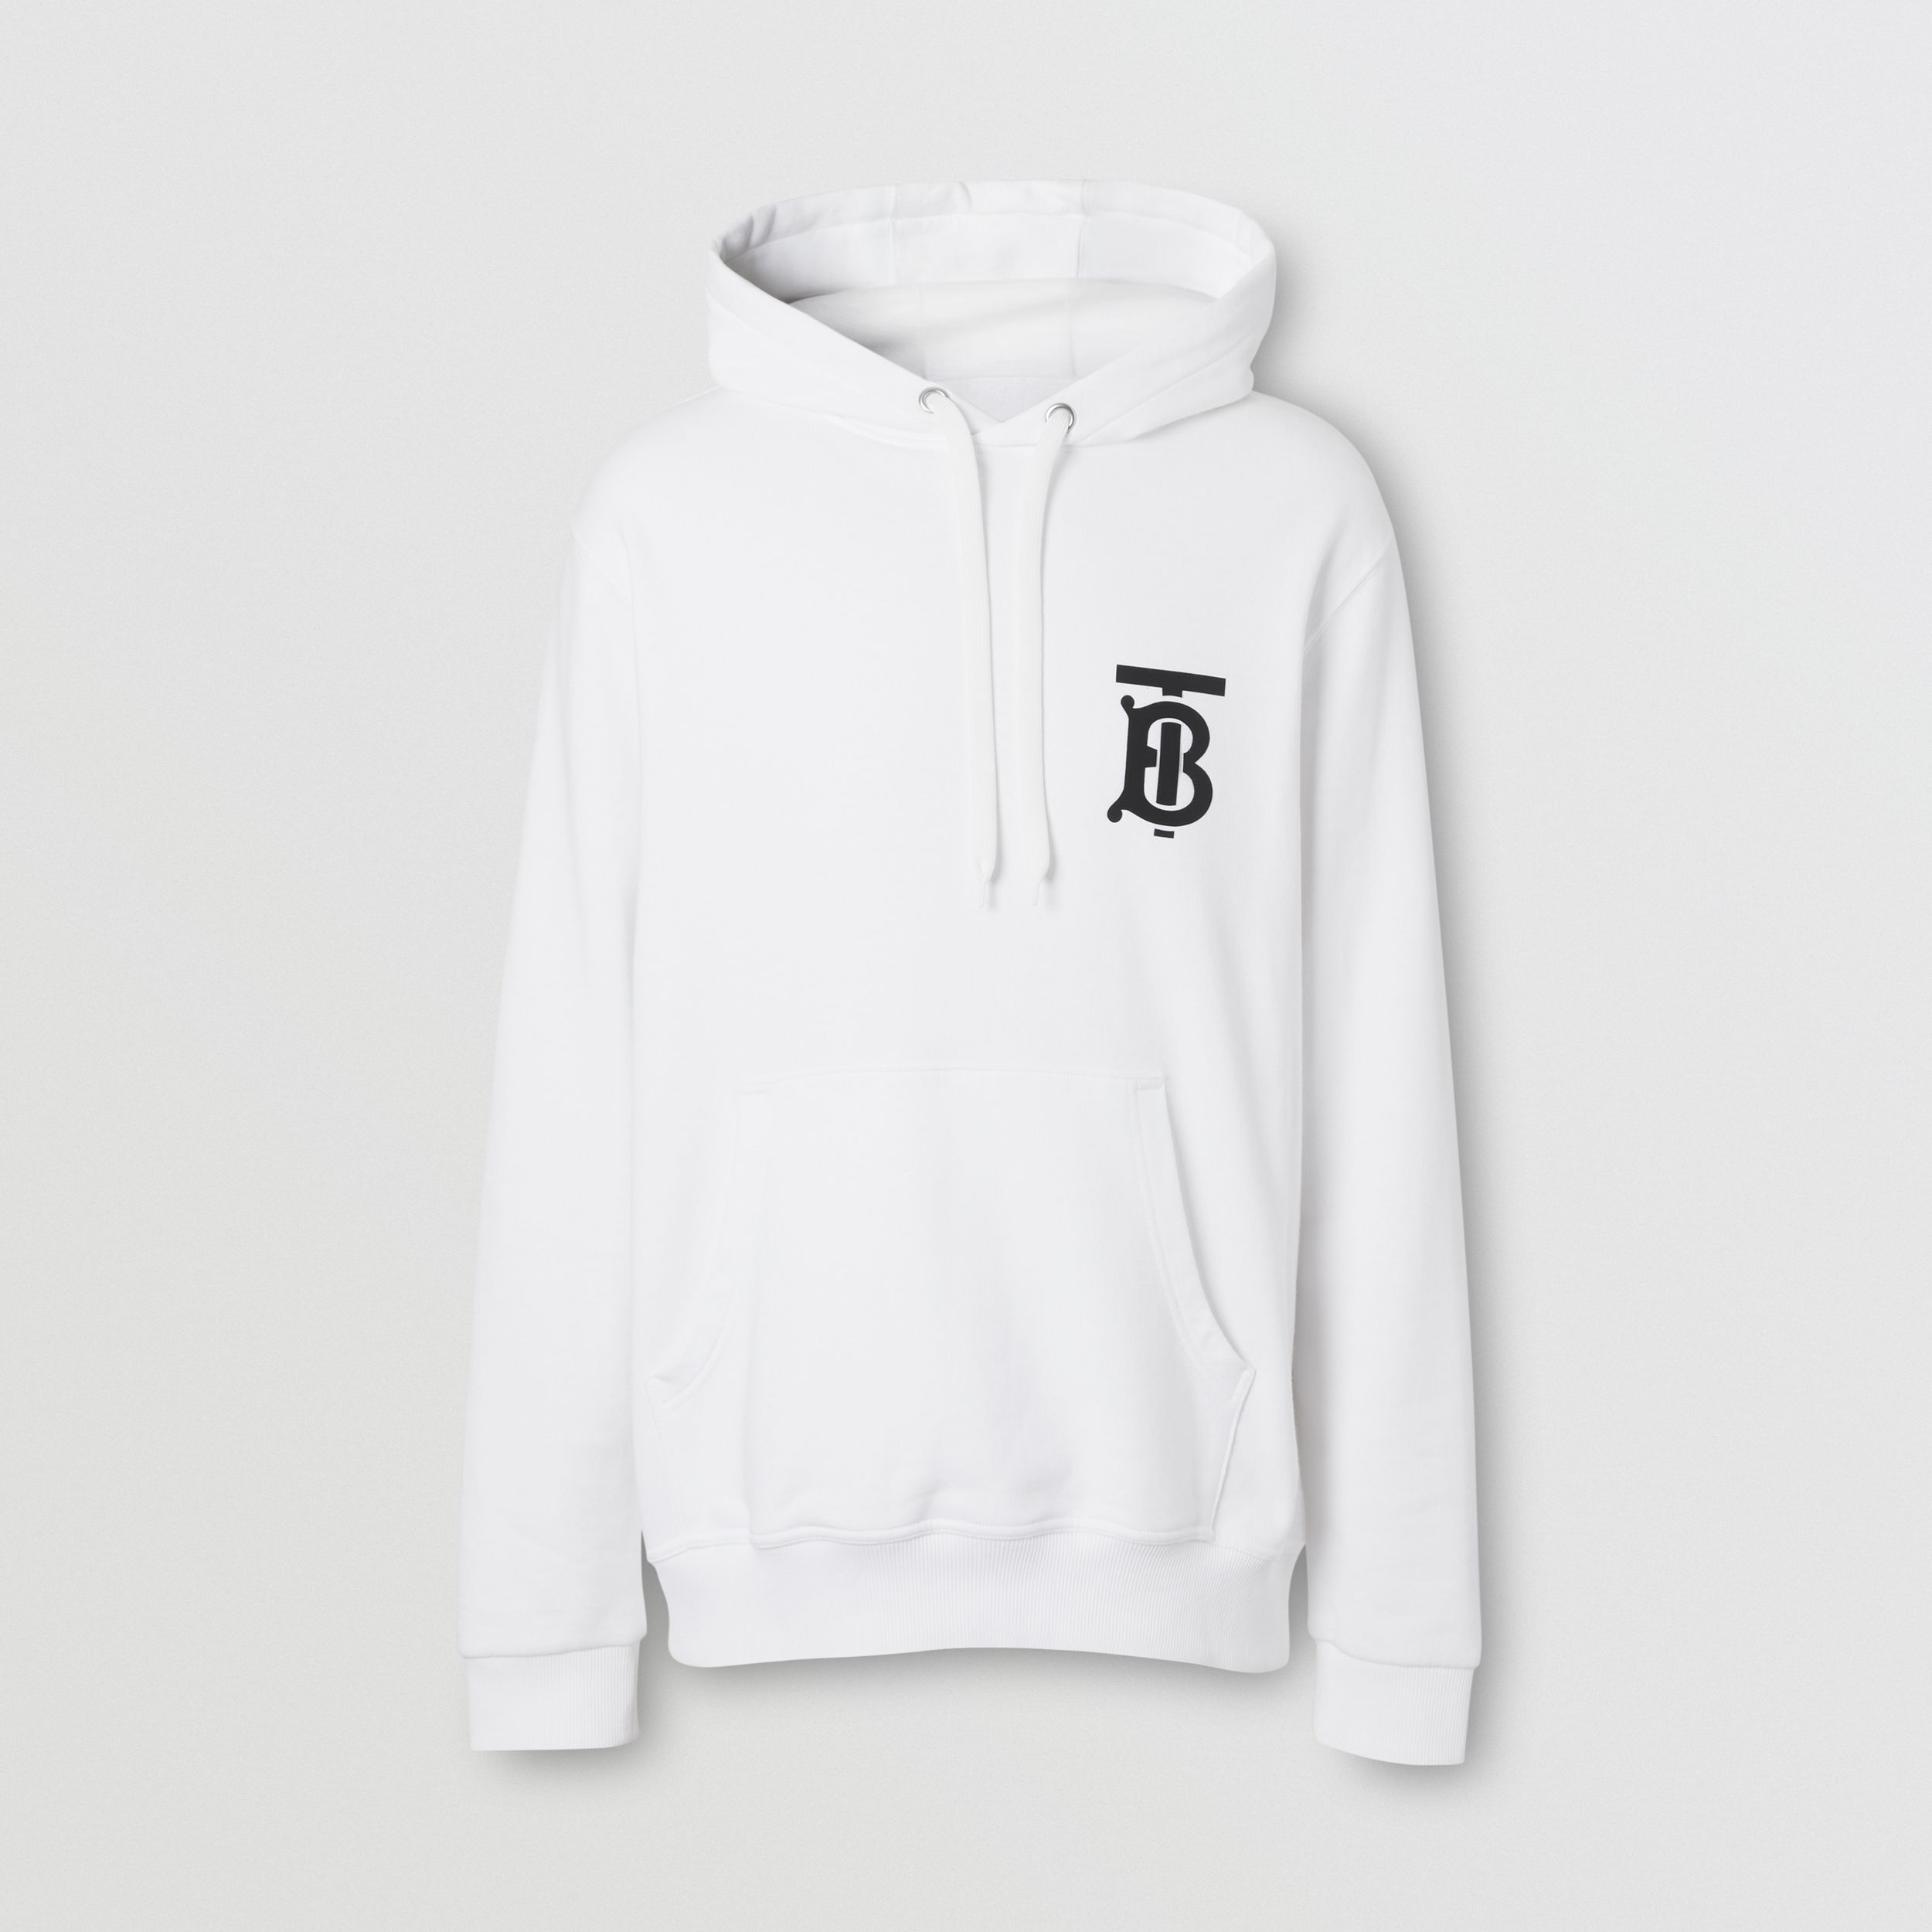 Monogram Motif Cotton Hoodie in White - Men | Burberry - 4